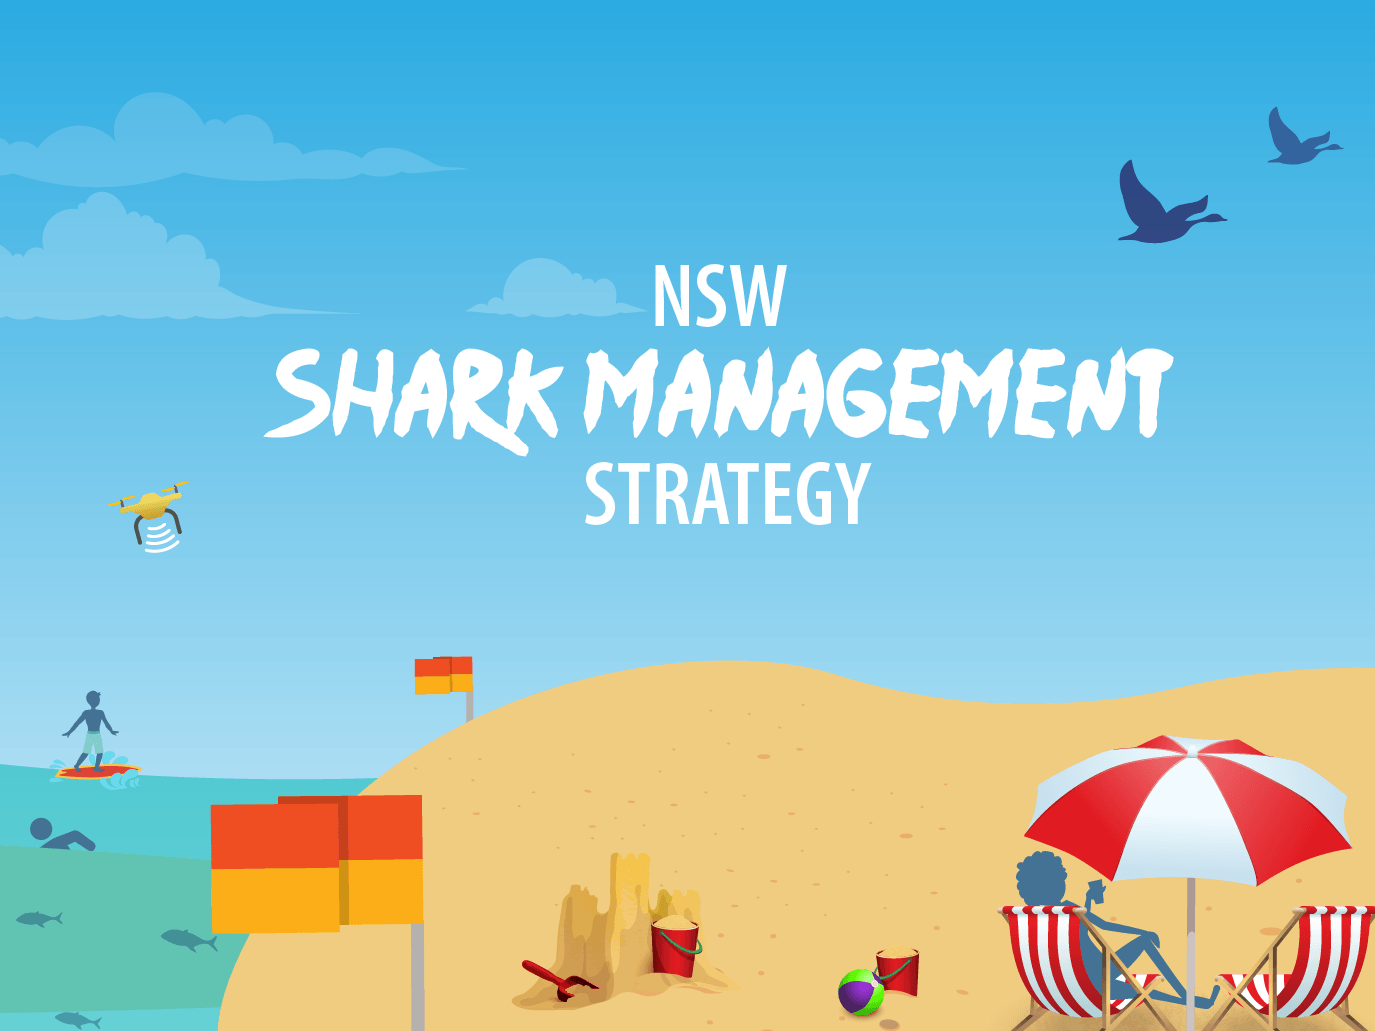 Shark strategy illustration